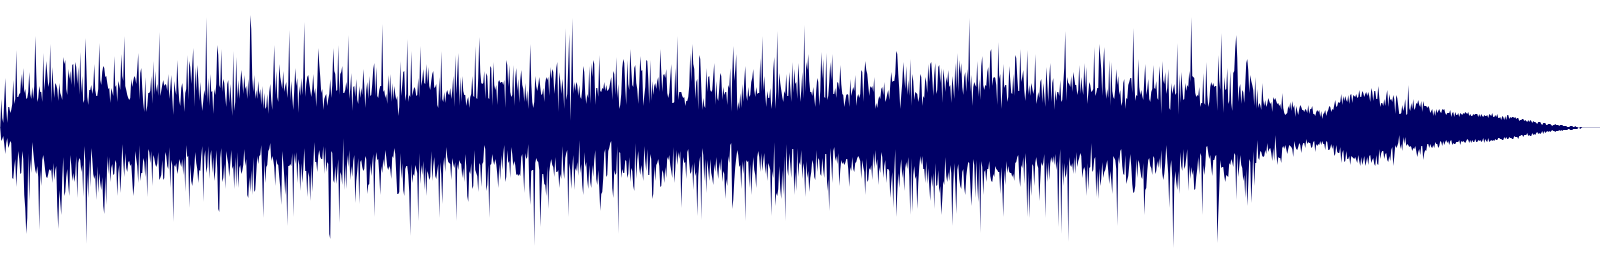 waveform of track #146453